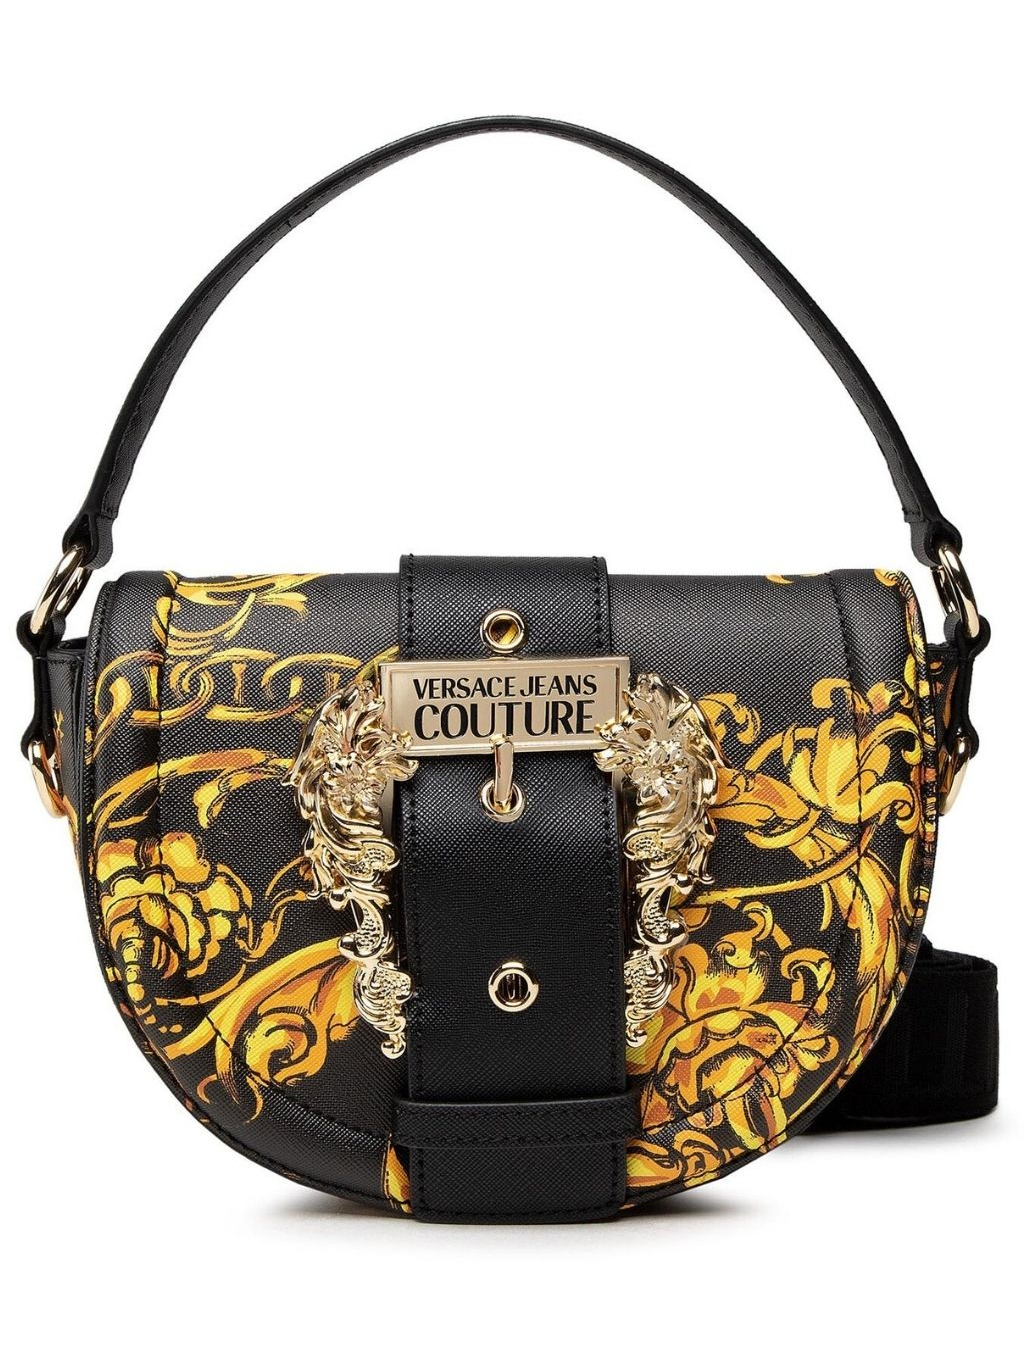 versace jeans couture gold crossbody kabelka 3 (8)